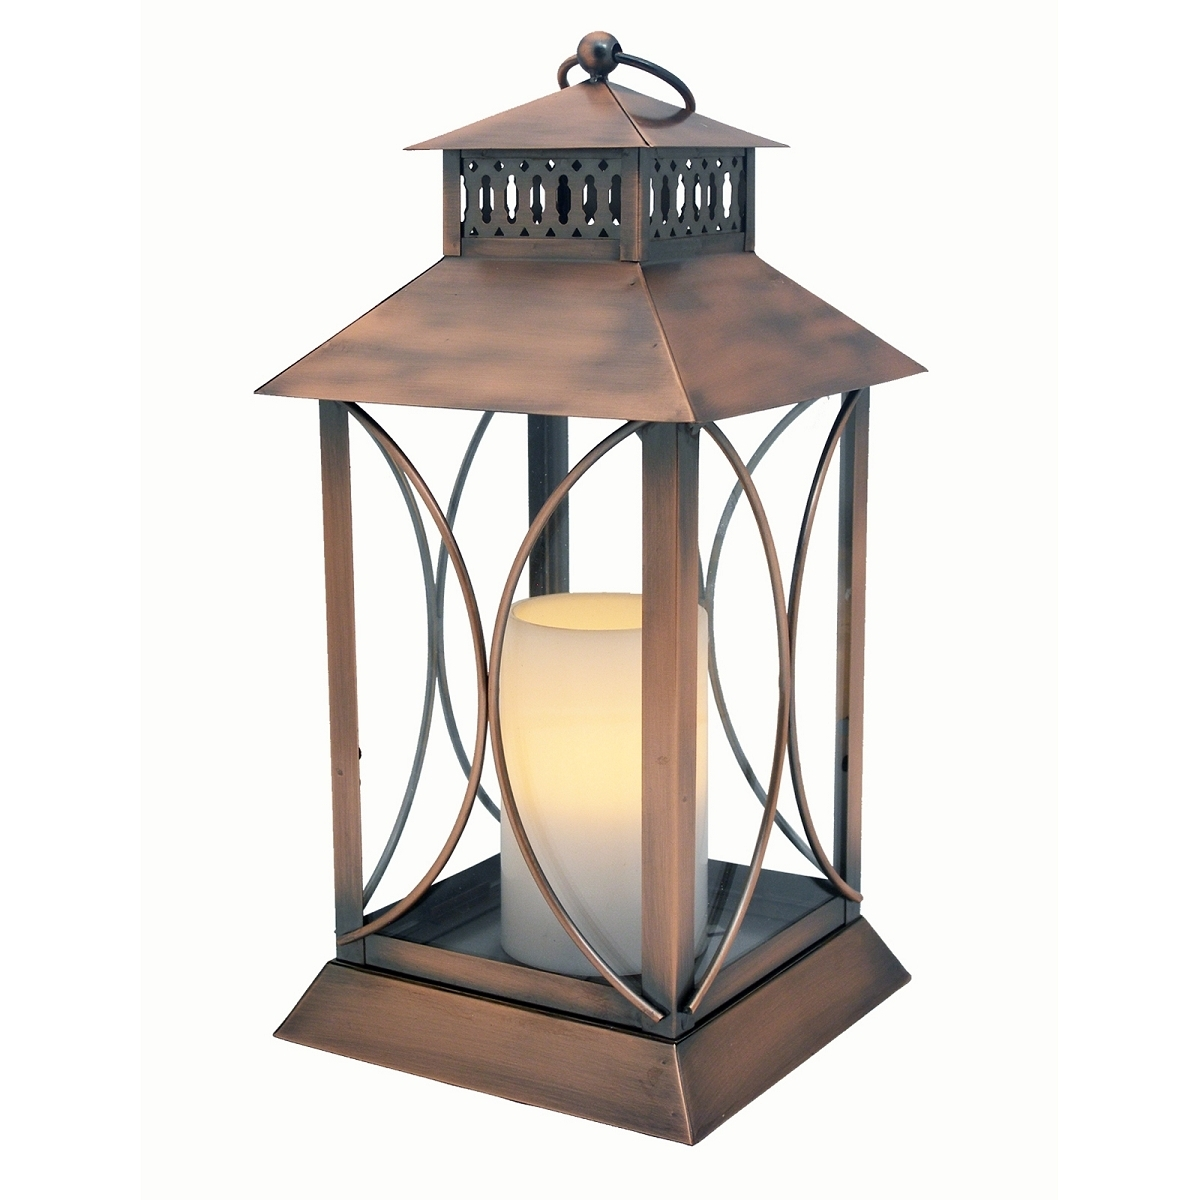 Neuporte Flameless Candle Lantern With Timer Indoor Outdoor inside Outdoor Lanterns With Flameless Candles (Image 13 of 20)